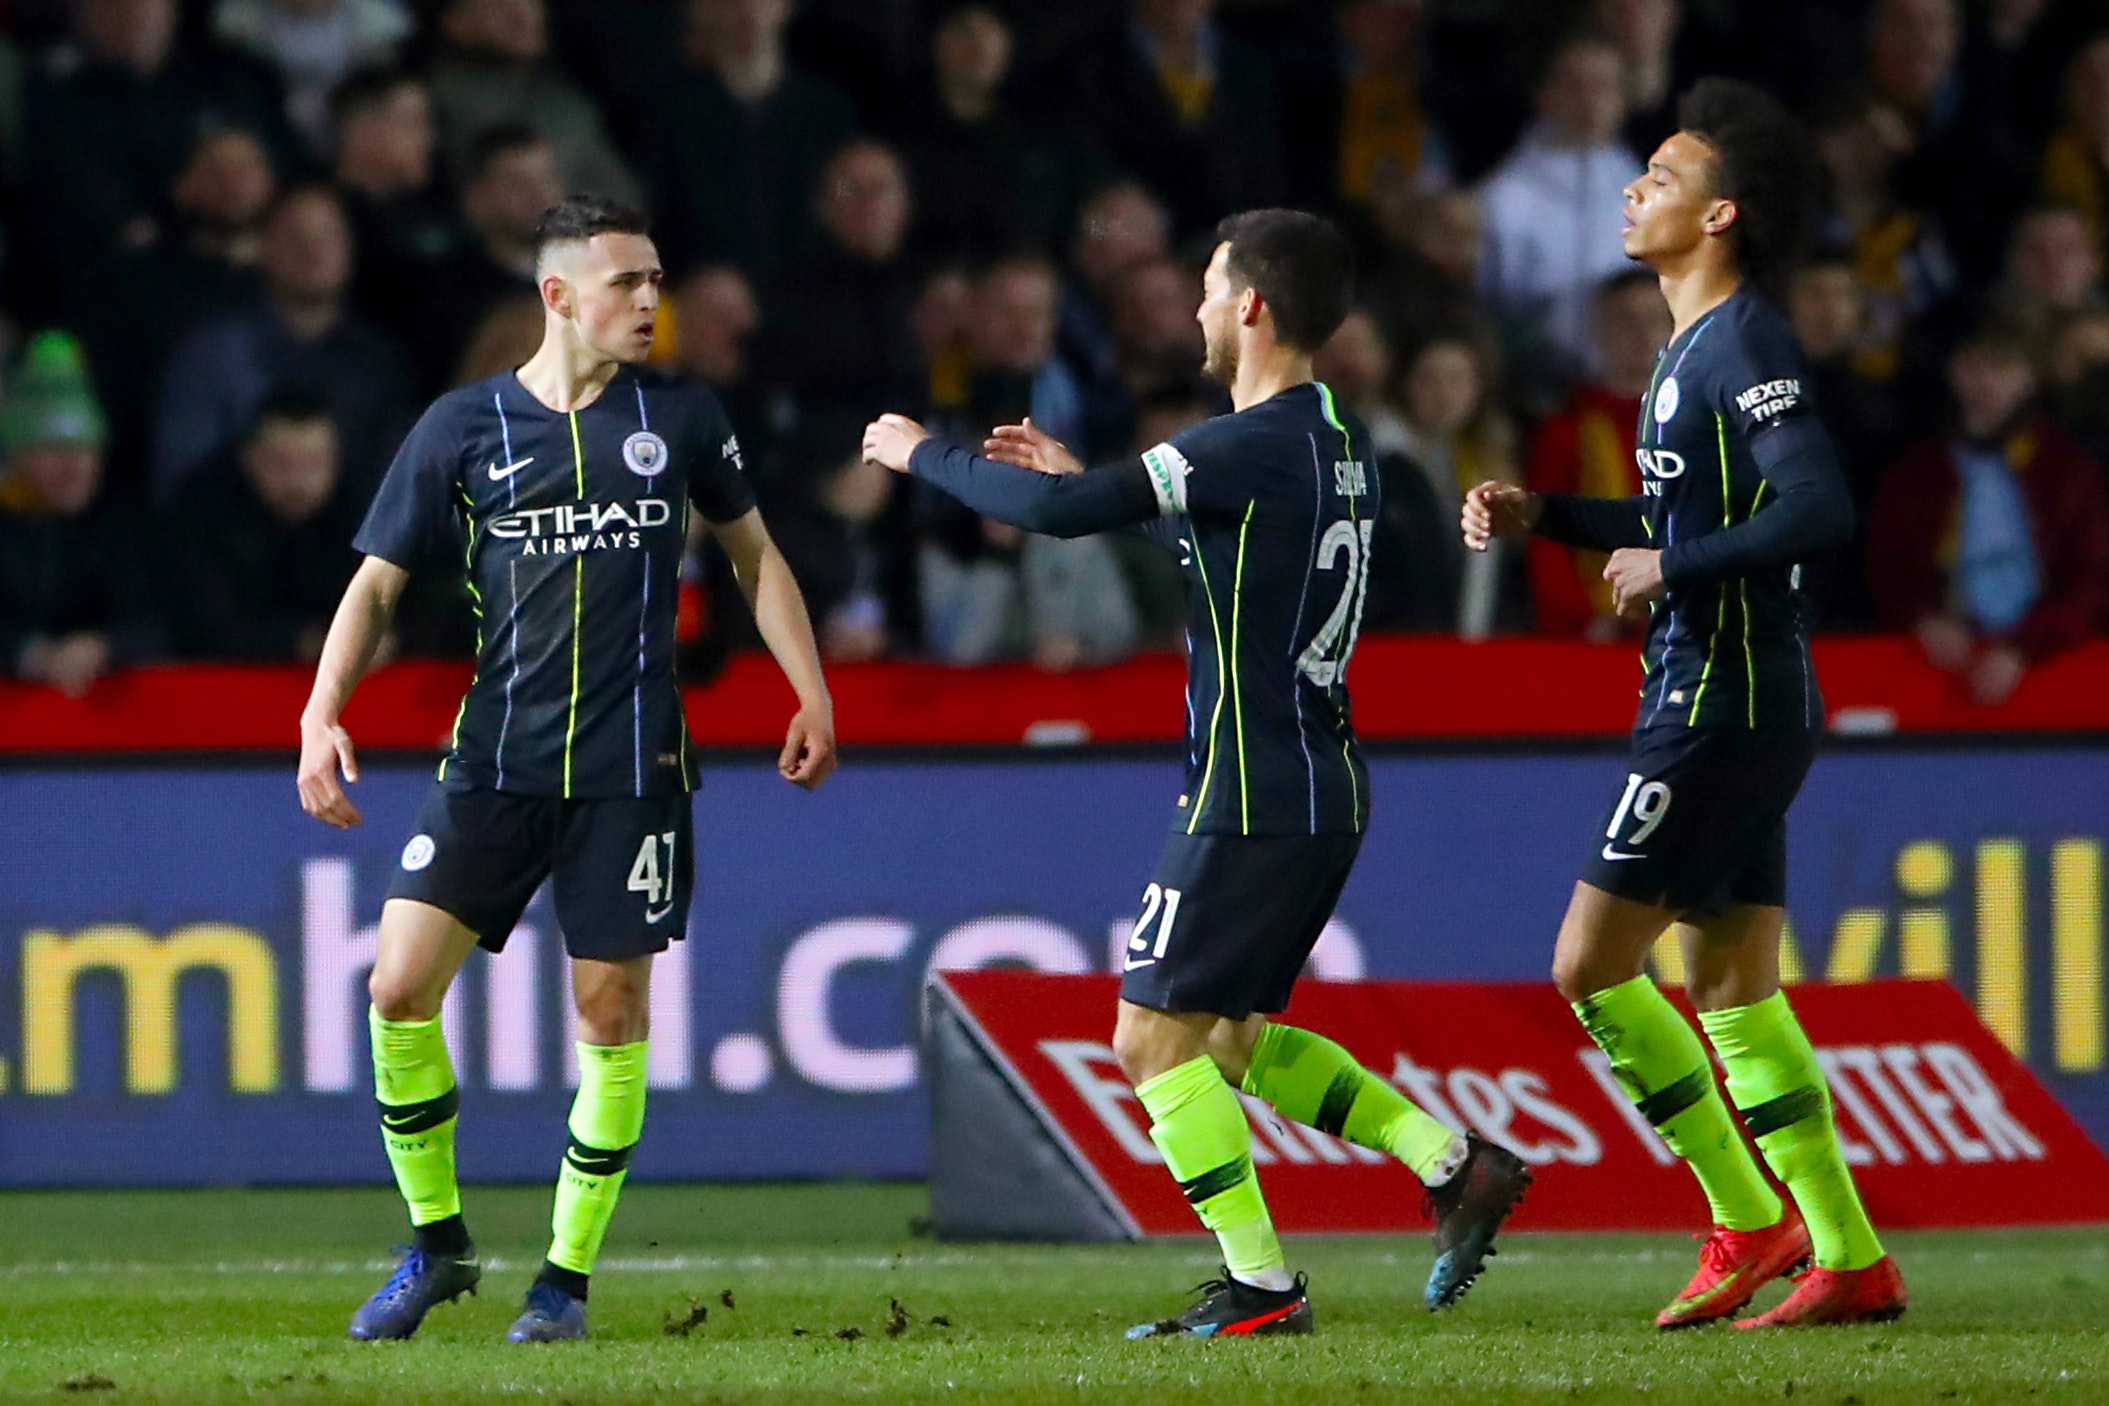 Phil Foden starred in Manchester City's win over Newport